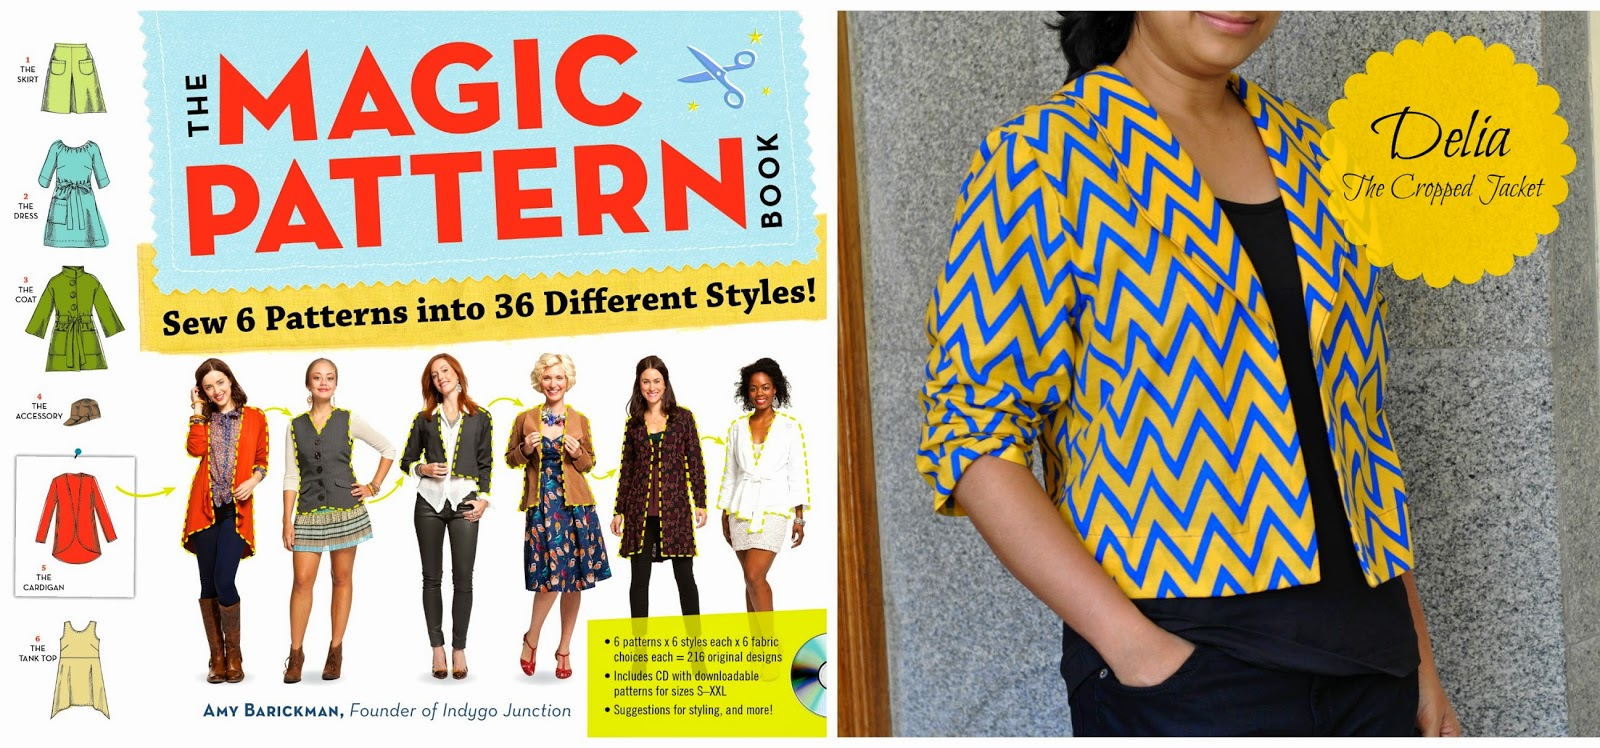 Jacket sewing pattern for beginners without lining made form the magic pattern book by amy barickman founder of indygo junction. Yellow jacket with blue chevron or zig zag print. simple collar and three fourth sleeves